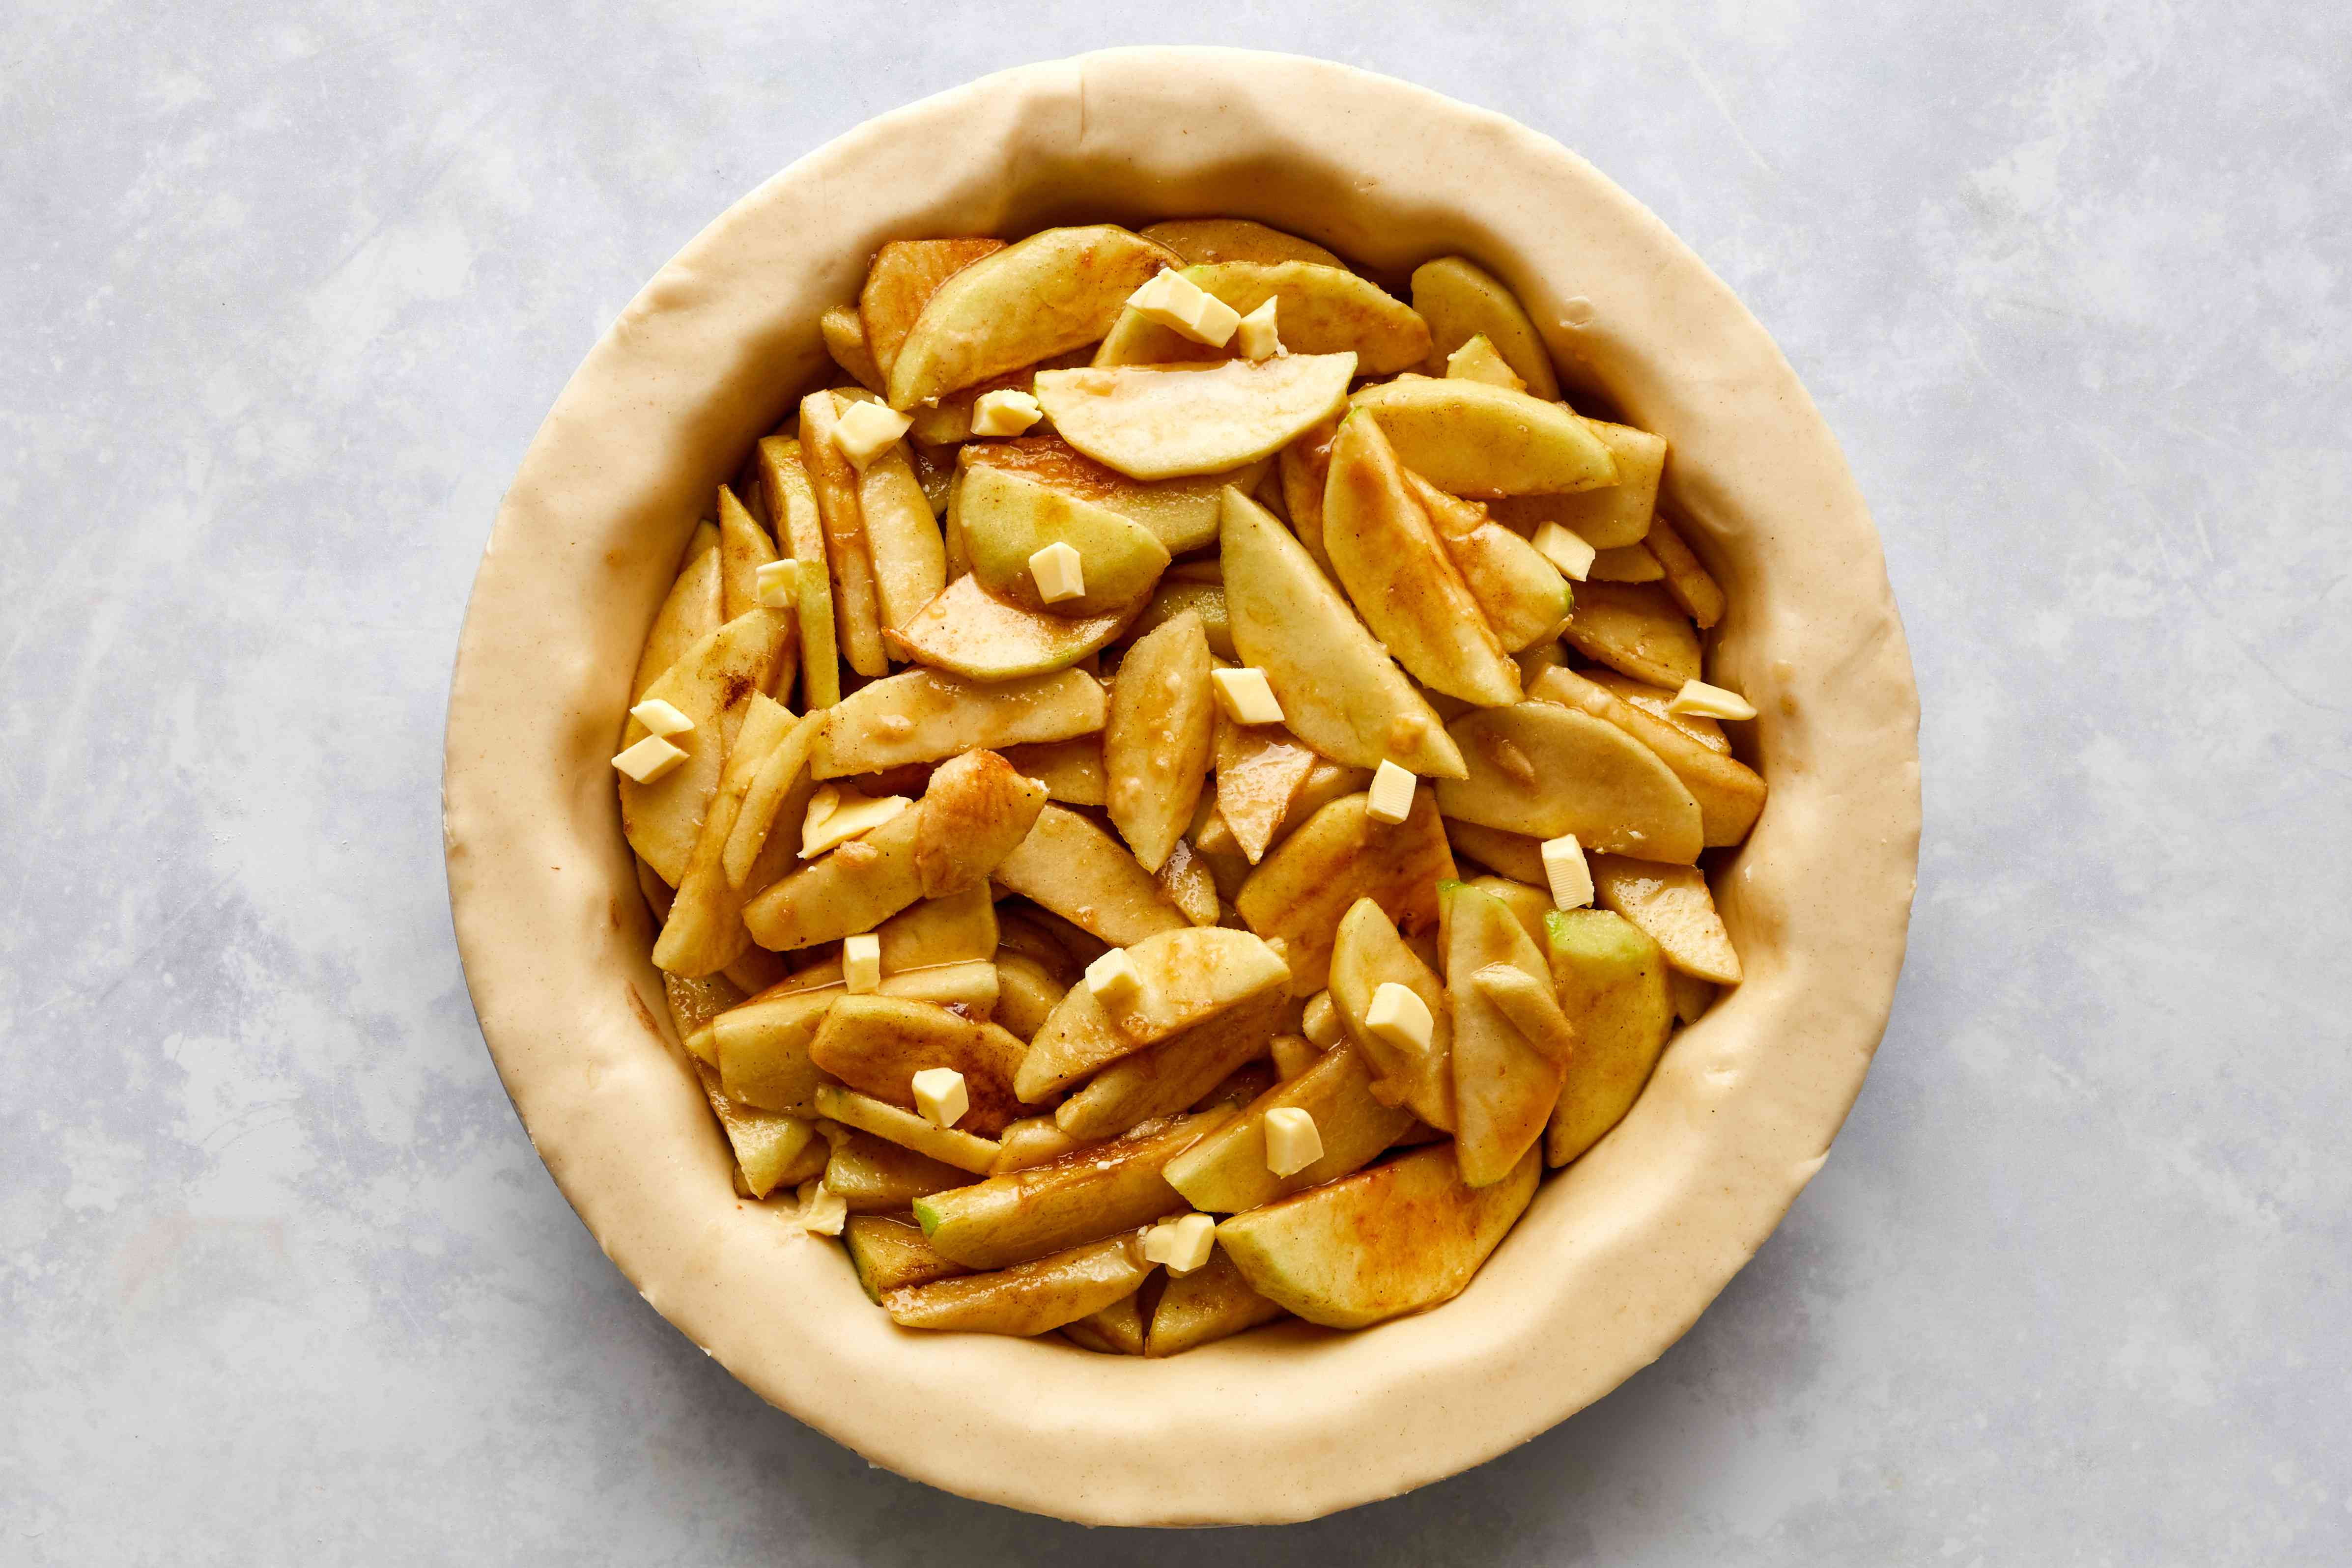 Apple slices mounded on the pie crust